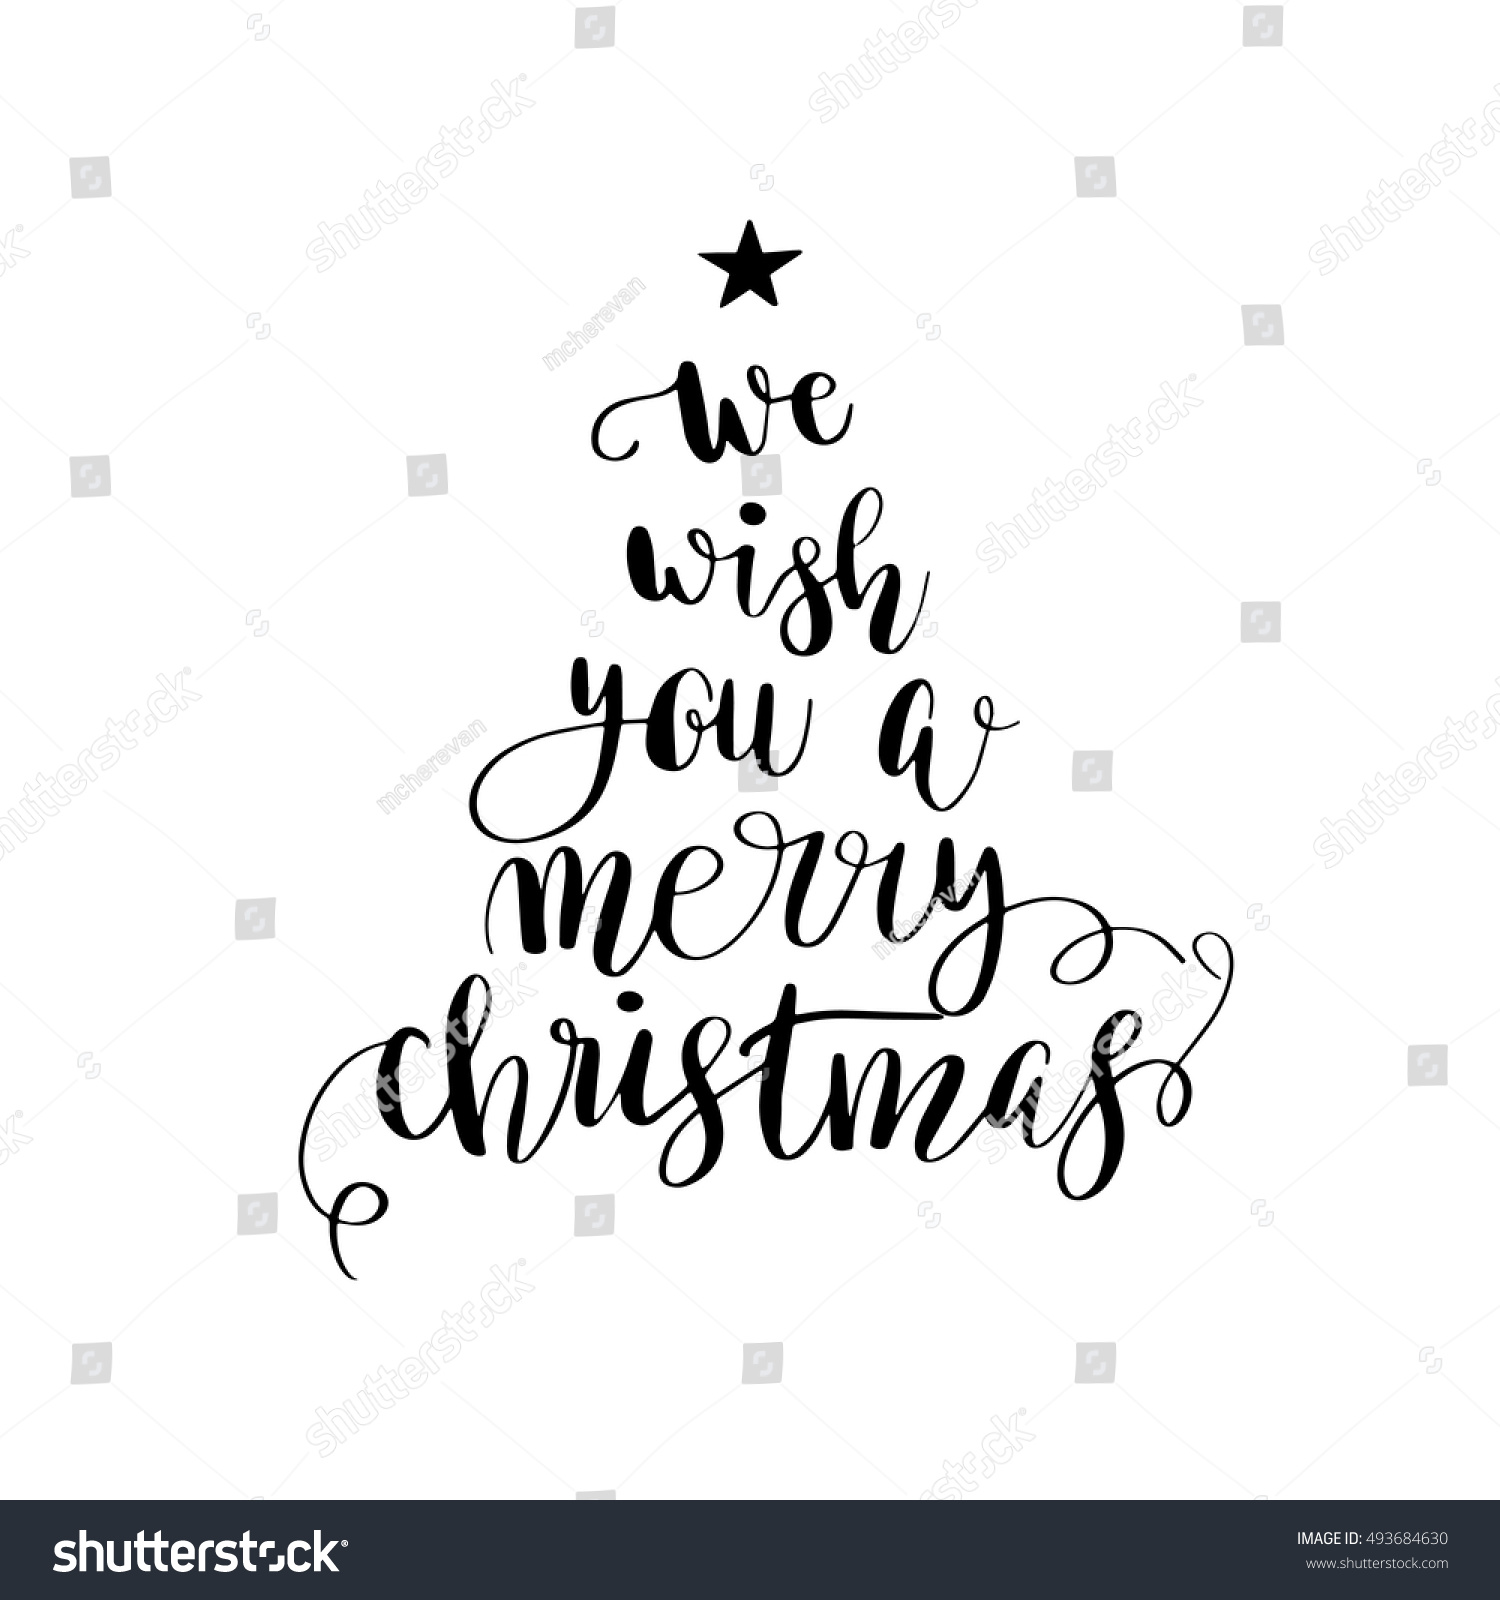 We Wish You Merry Christmas Poster Vector de stock (libre de ...